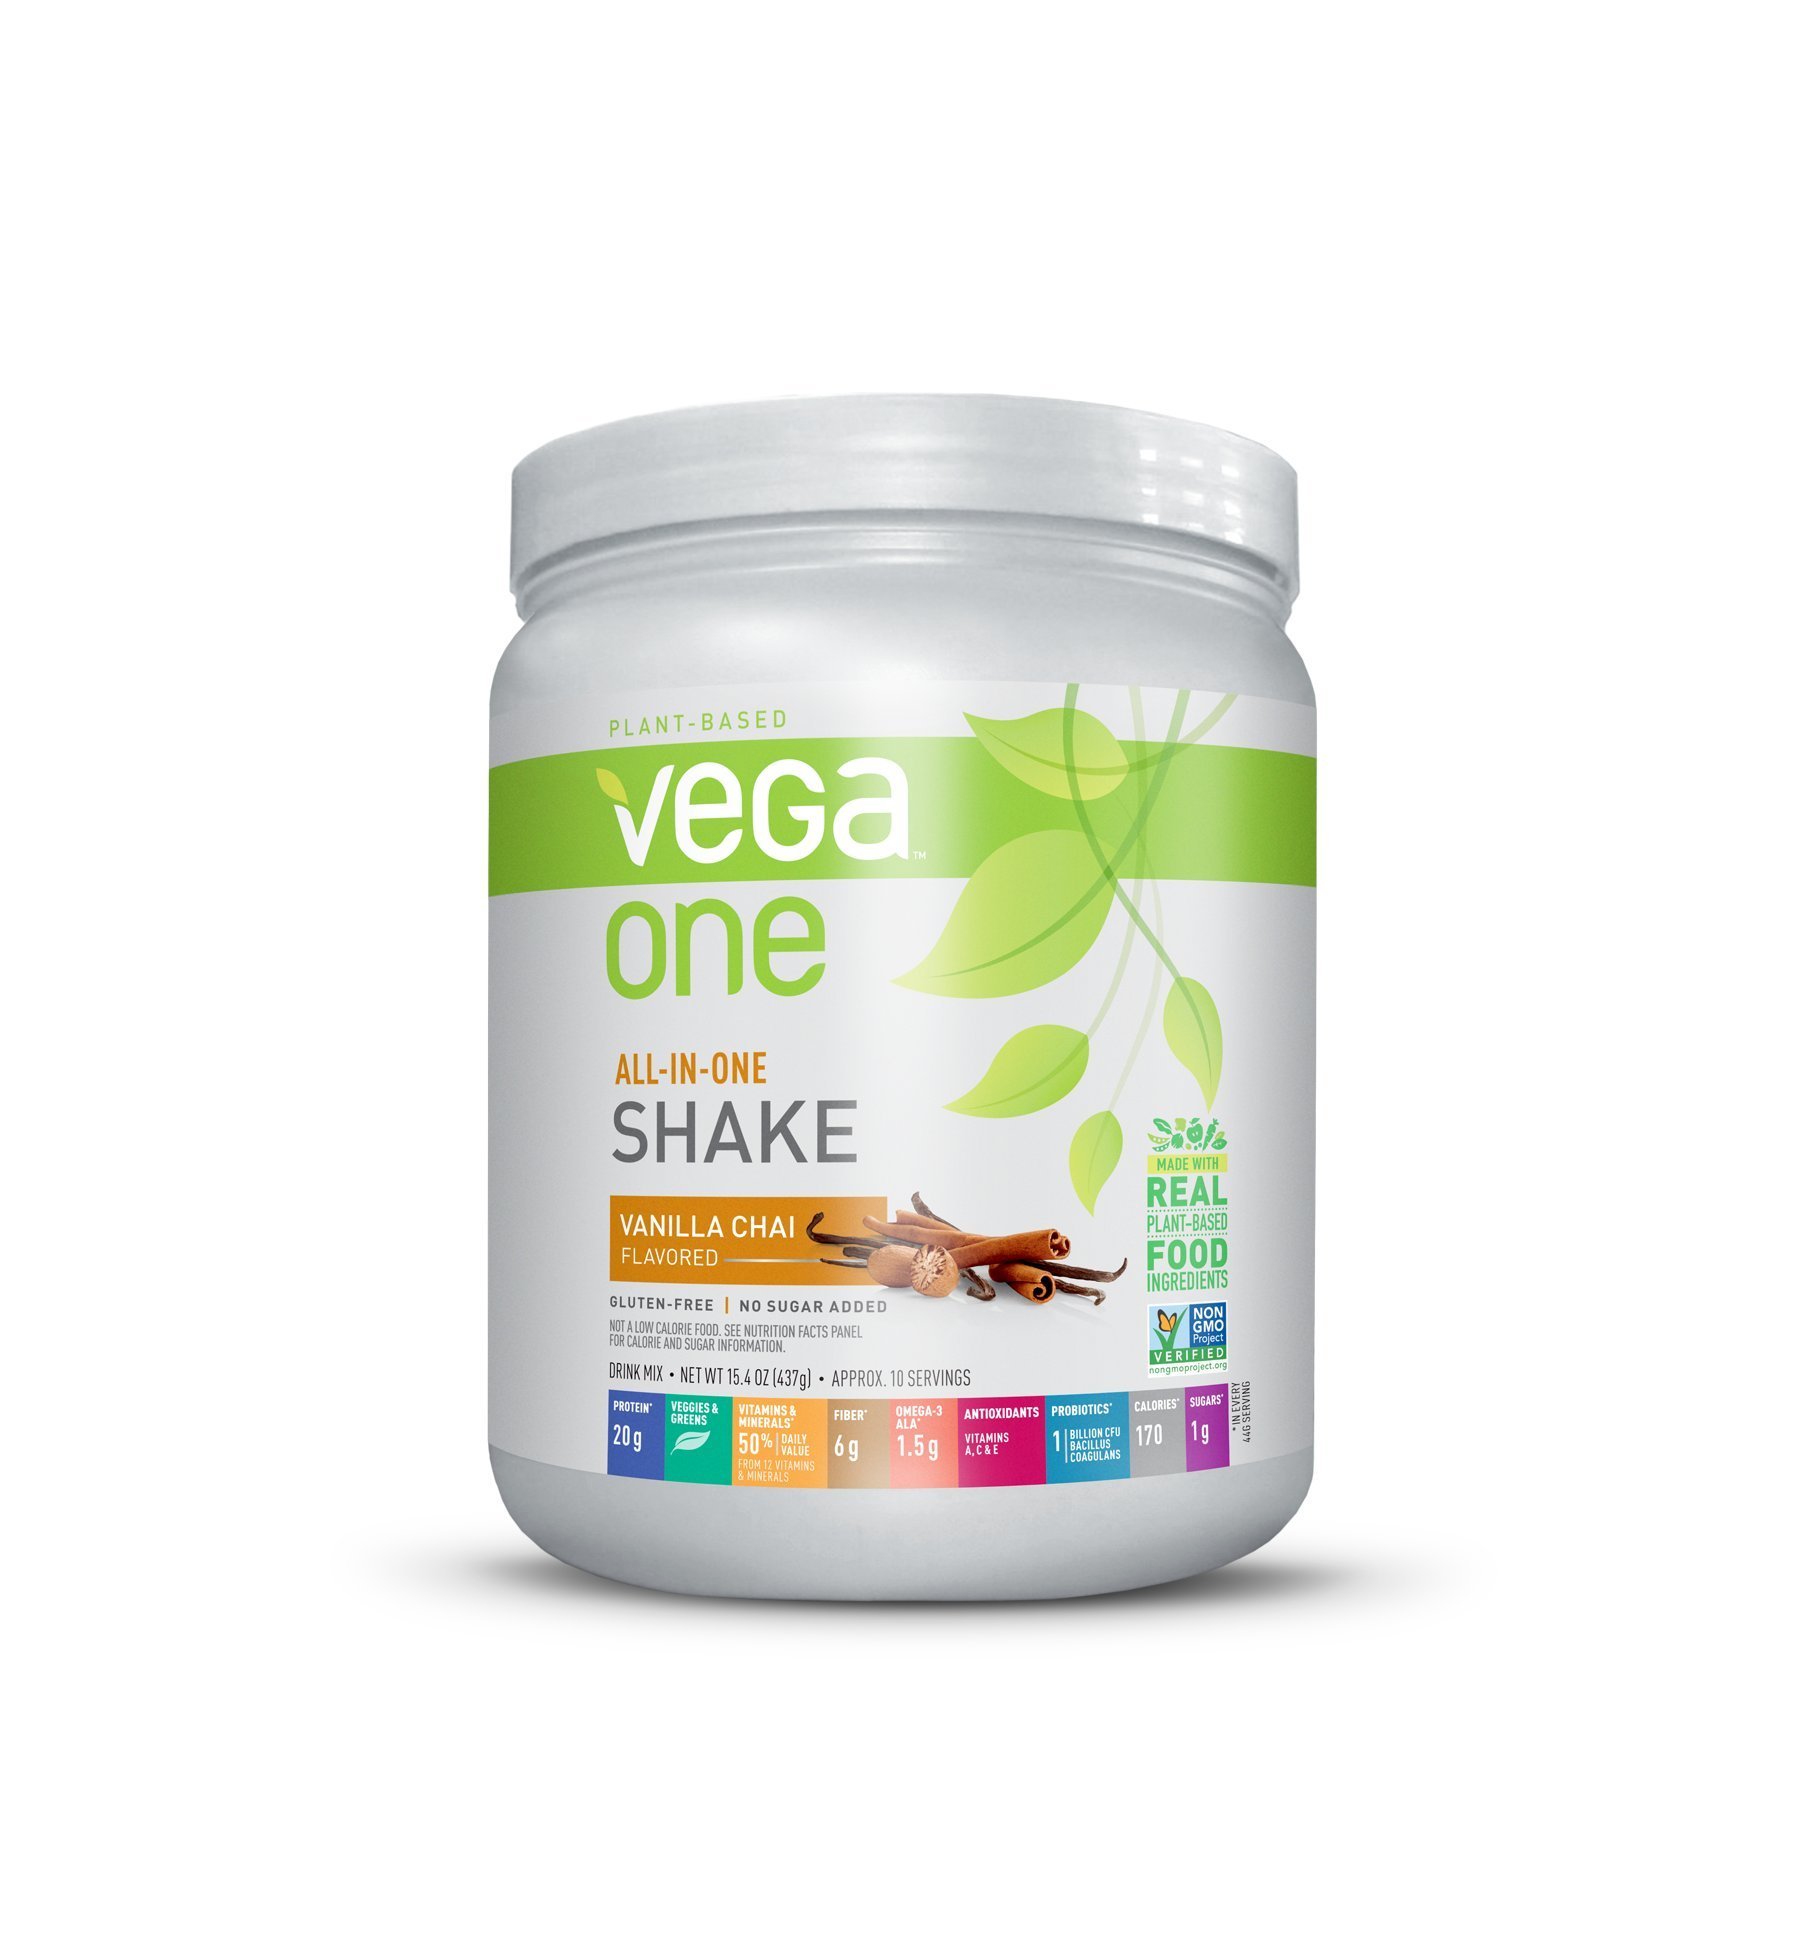 Vega One All-In-One Plant Based Protein Powder, Vanilla Chai, 0.96 lb, 10 Servings